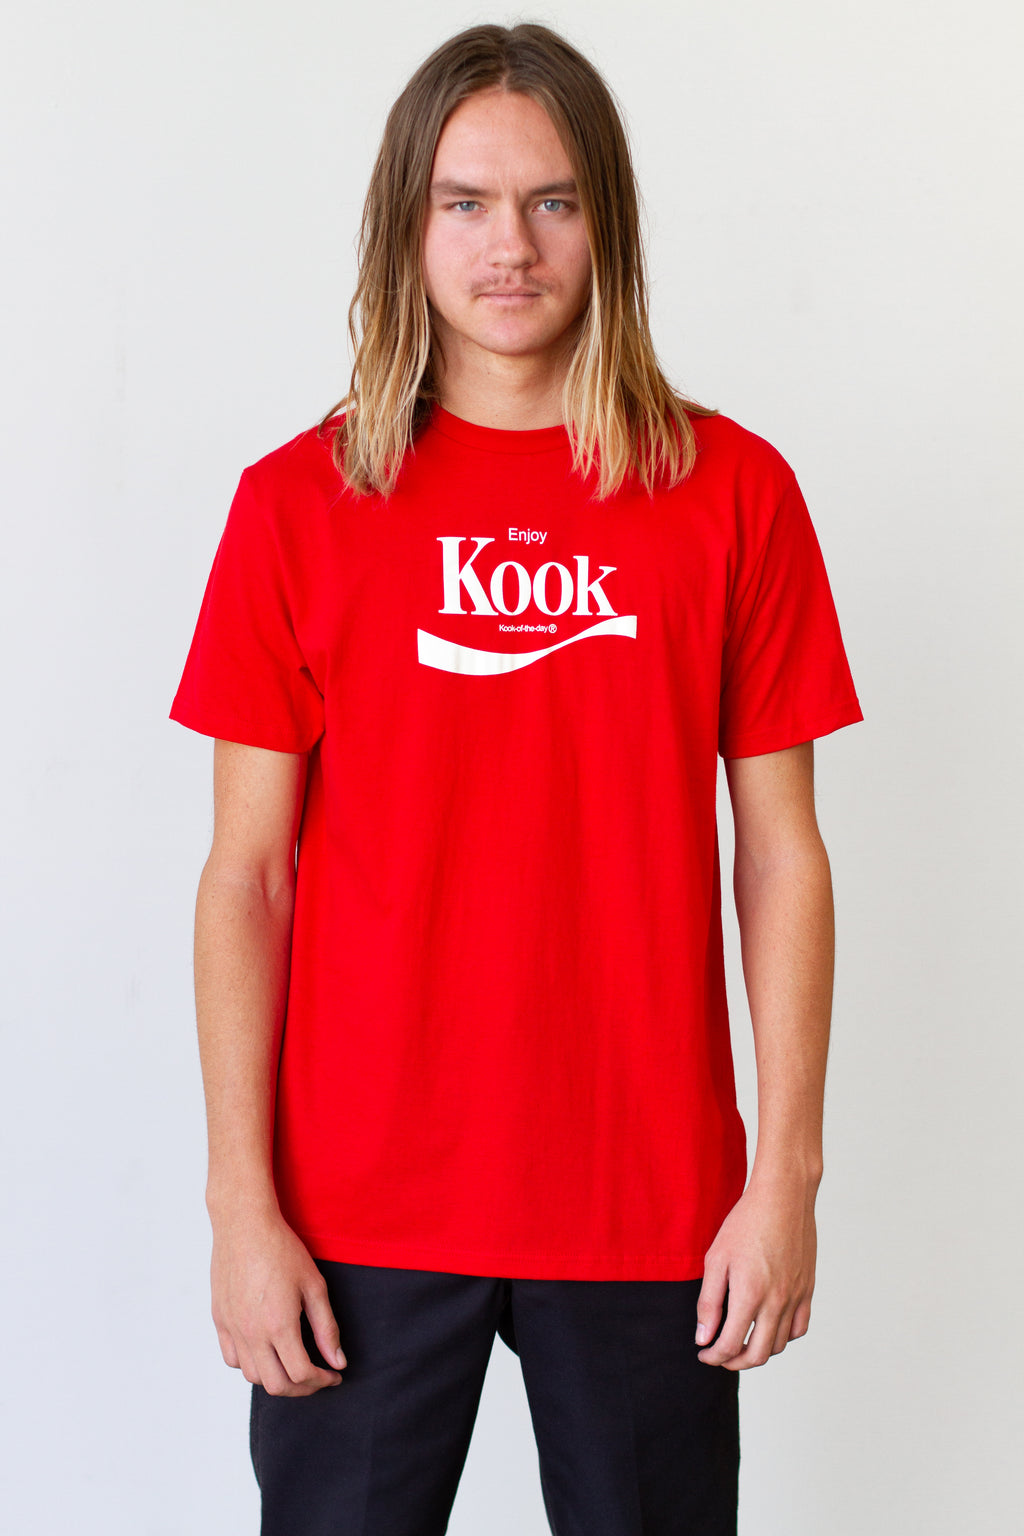 Enjoy Kook Red Tee